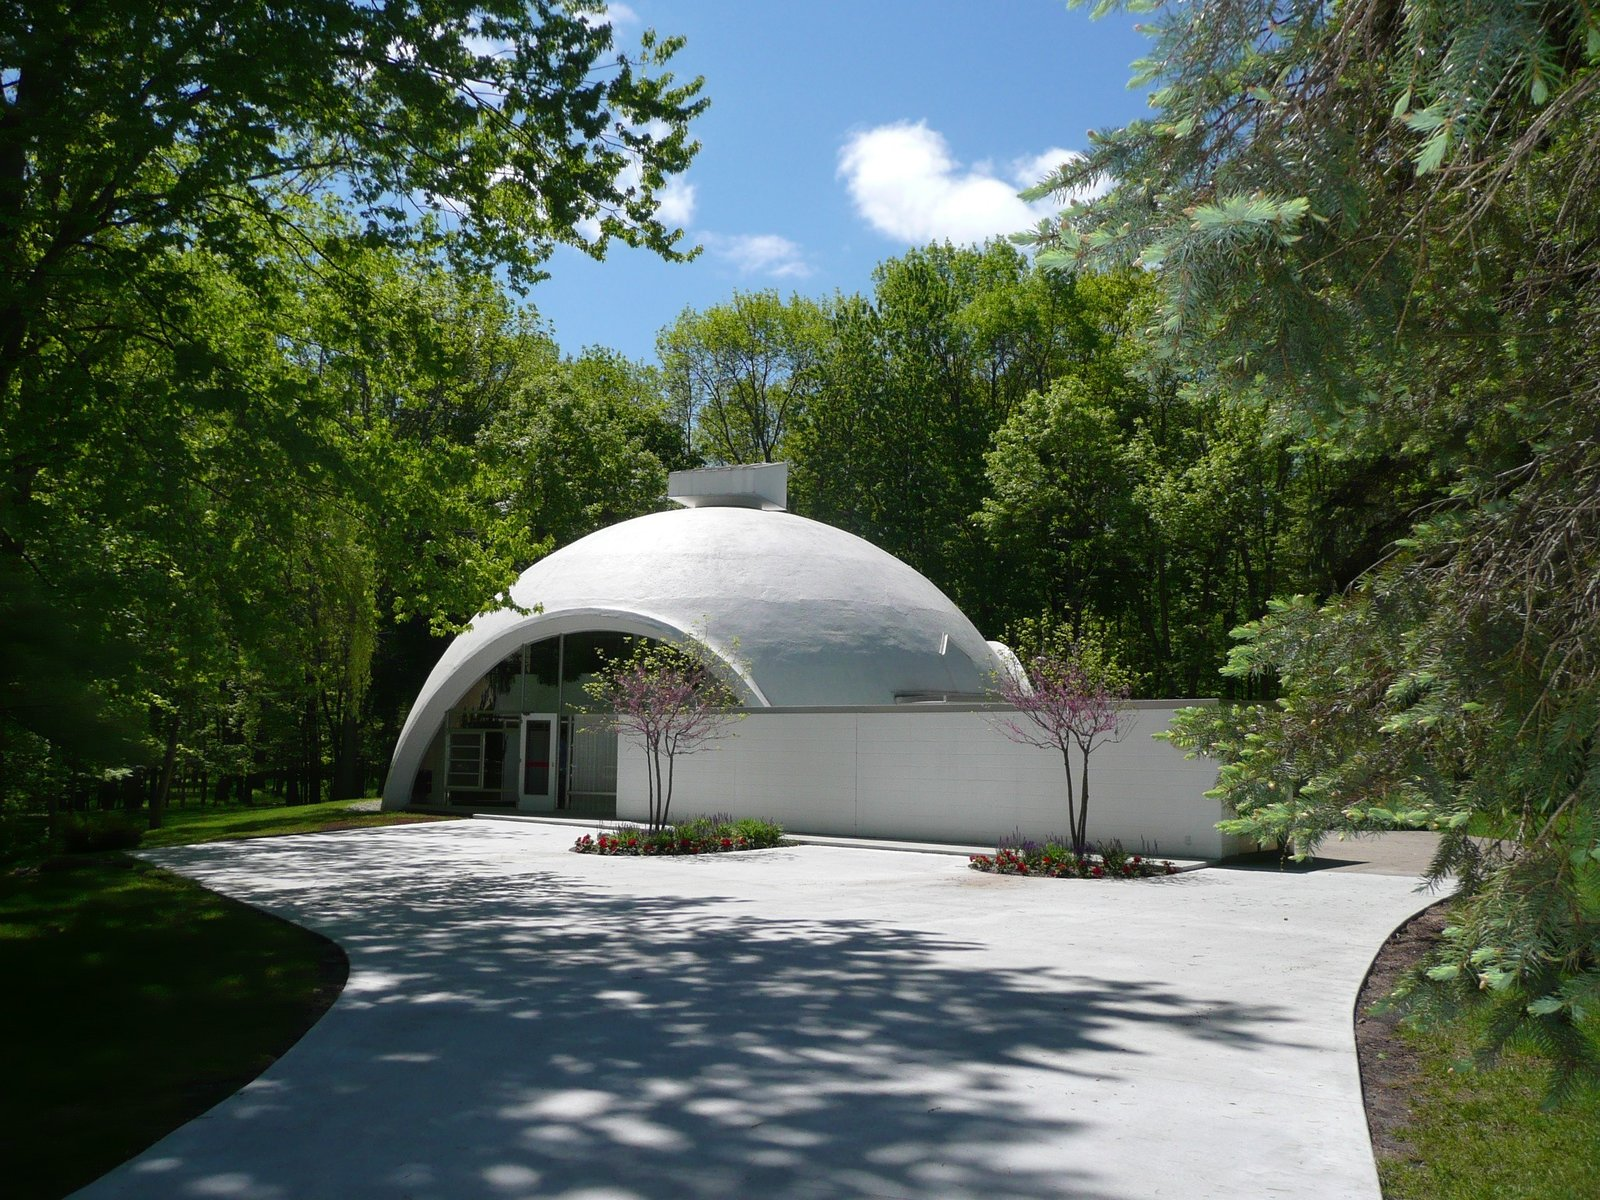 The Robert E. Schwartz House, designed by Robert Schwartz and nestled in Northwest Midland, features a dramatic concrete and styrofoam dome constructed with Dow Chemical technology.